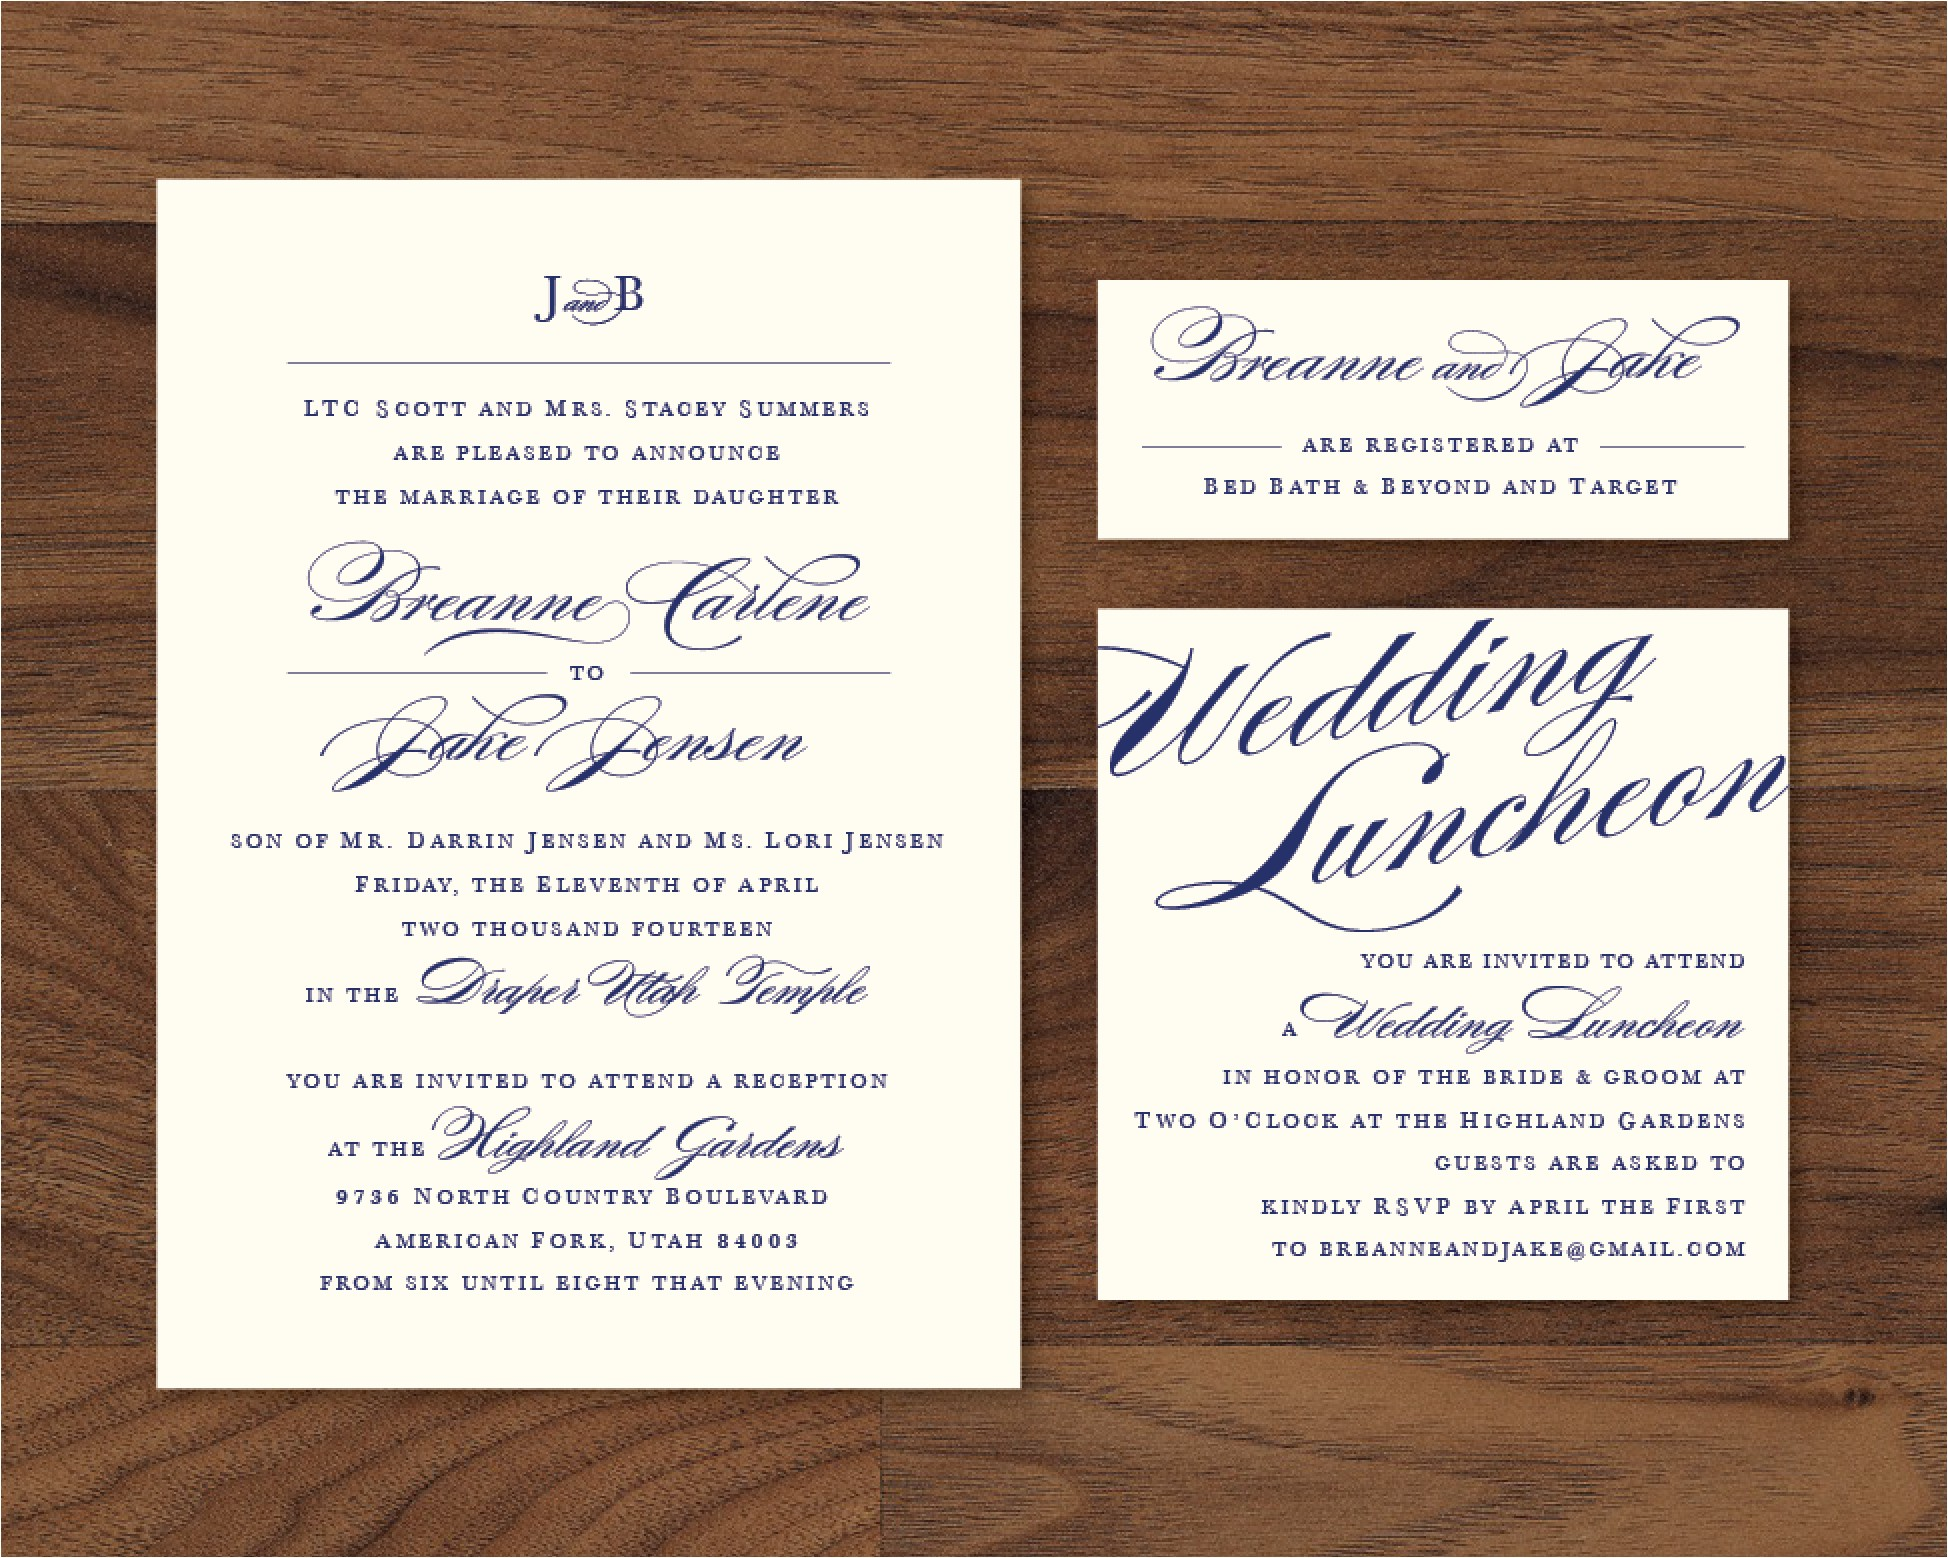 Wedding and Baptism Invitation Wedding Remarkable Baptism Invitation Cards T Accounts